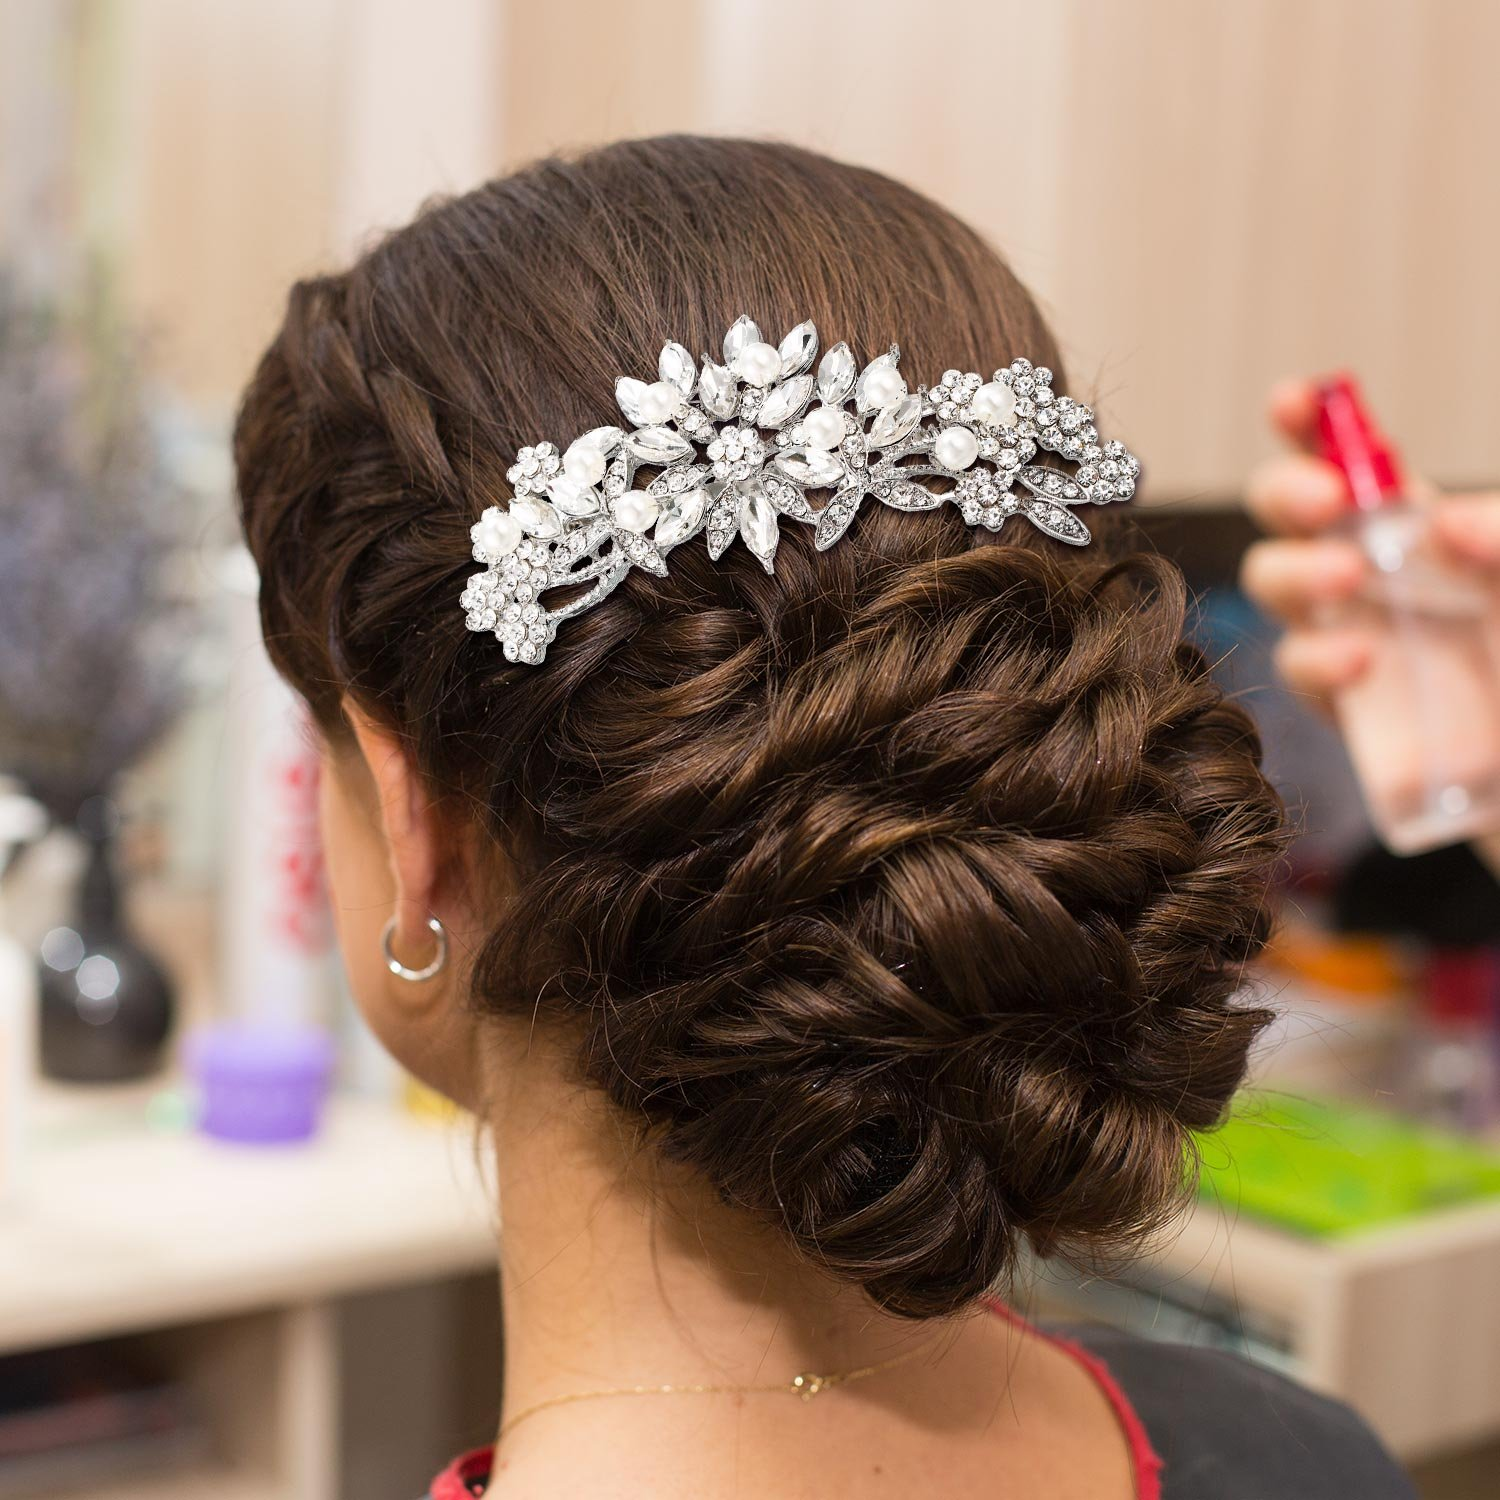 Gejoy 3 Pieces Elegant Wedding Crystal Hair Accessories, Leaves Flowers Hair Comb and 2 Pieces Rhinestone Bridal Hair Pins for Women, Bride or Bridesmaid by Gejoy (Image #6)